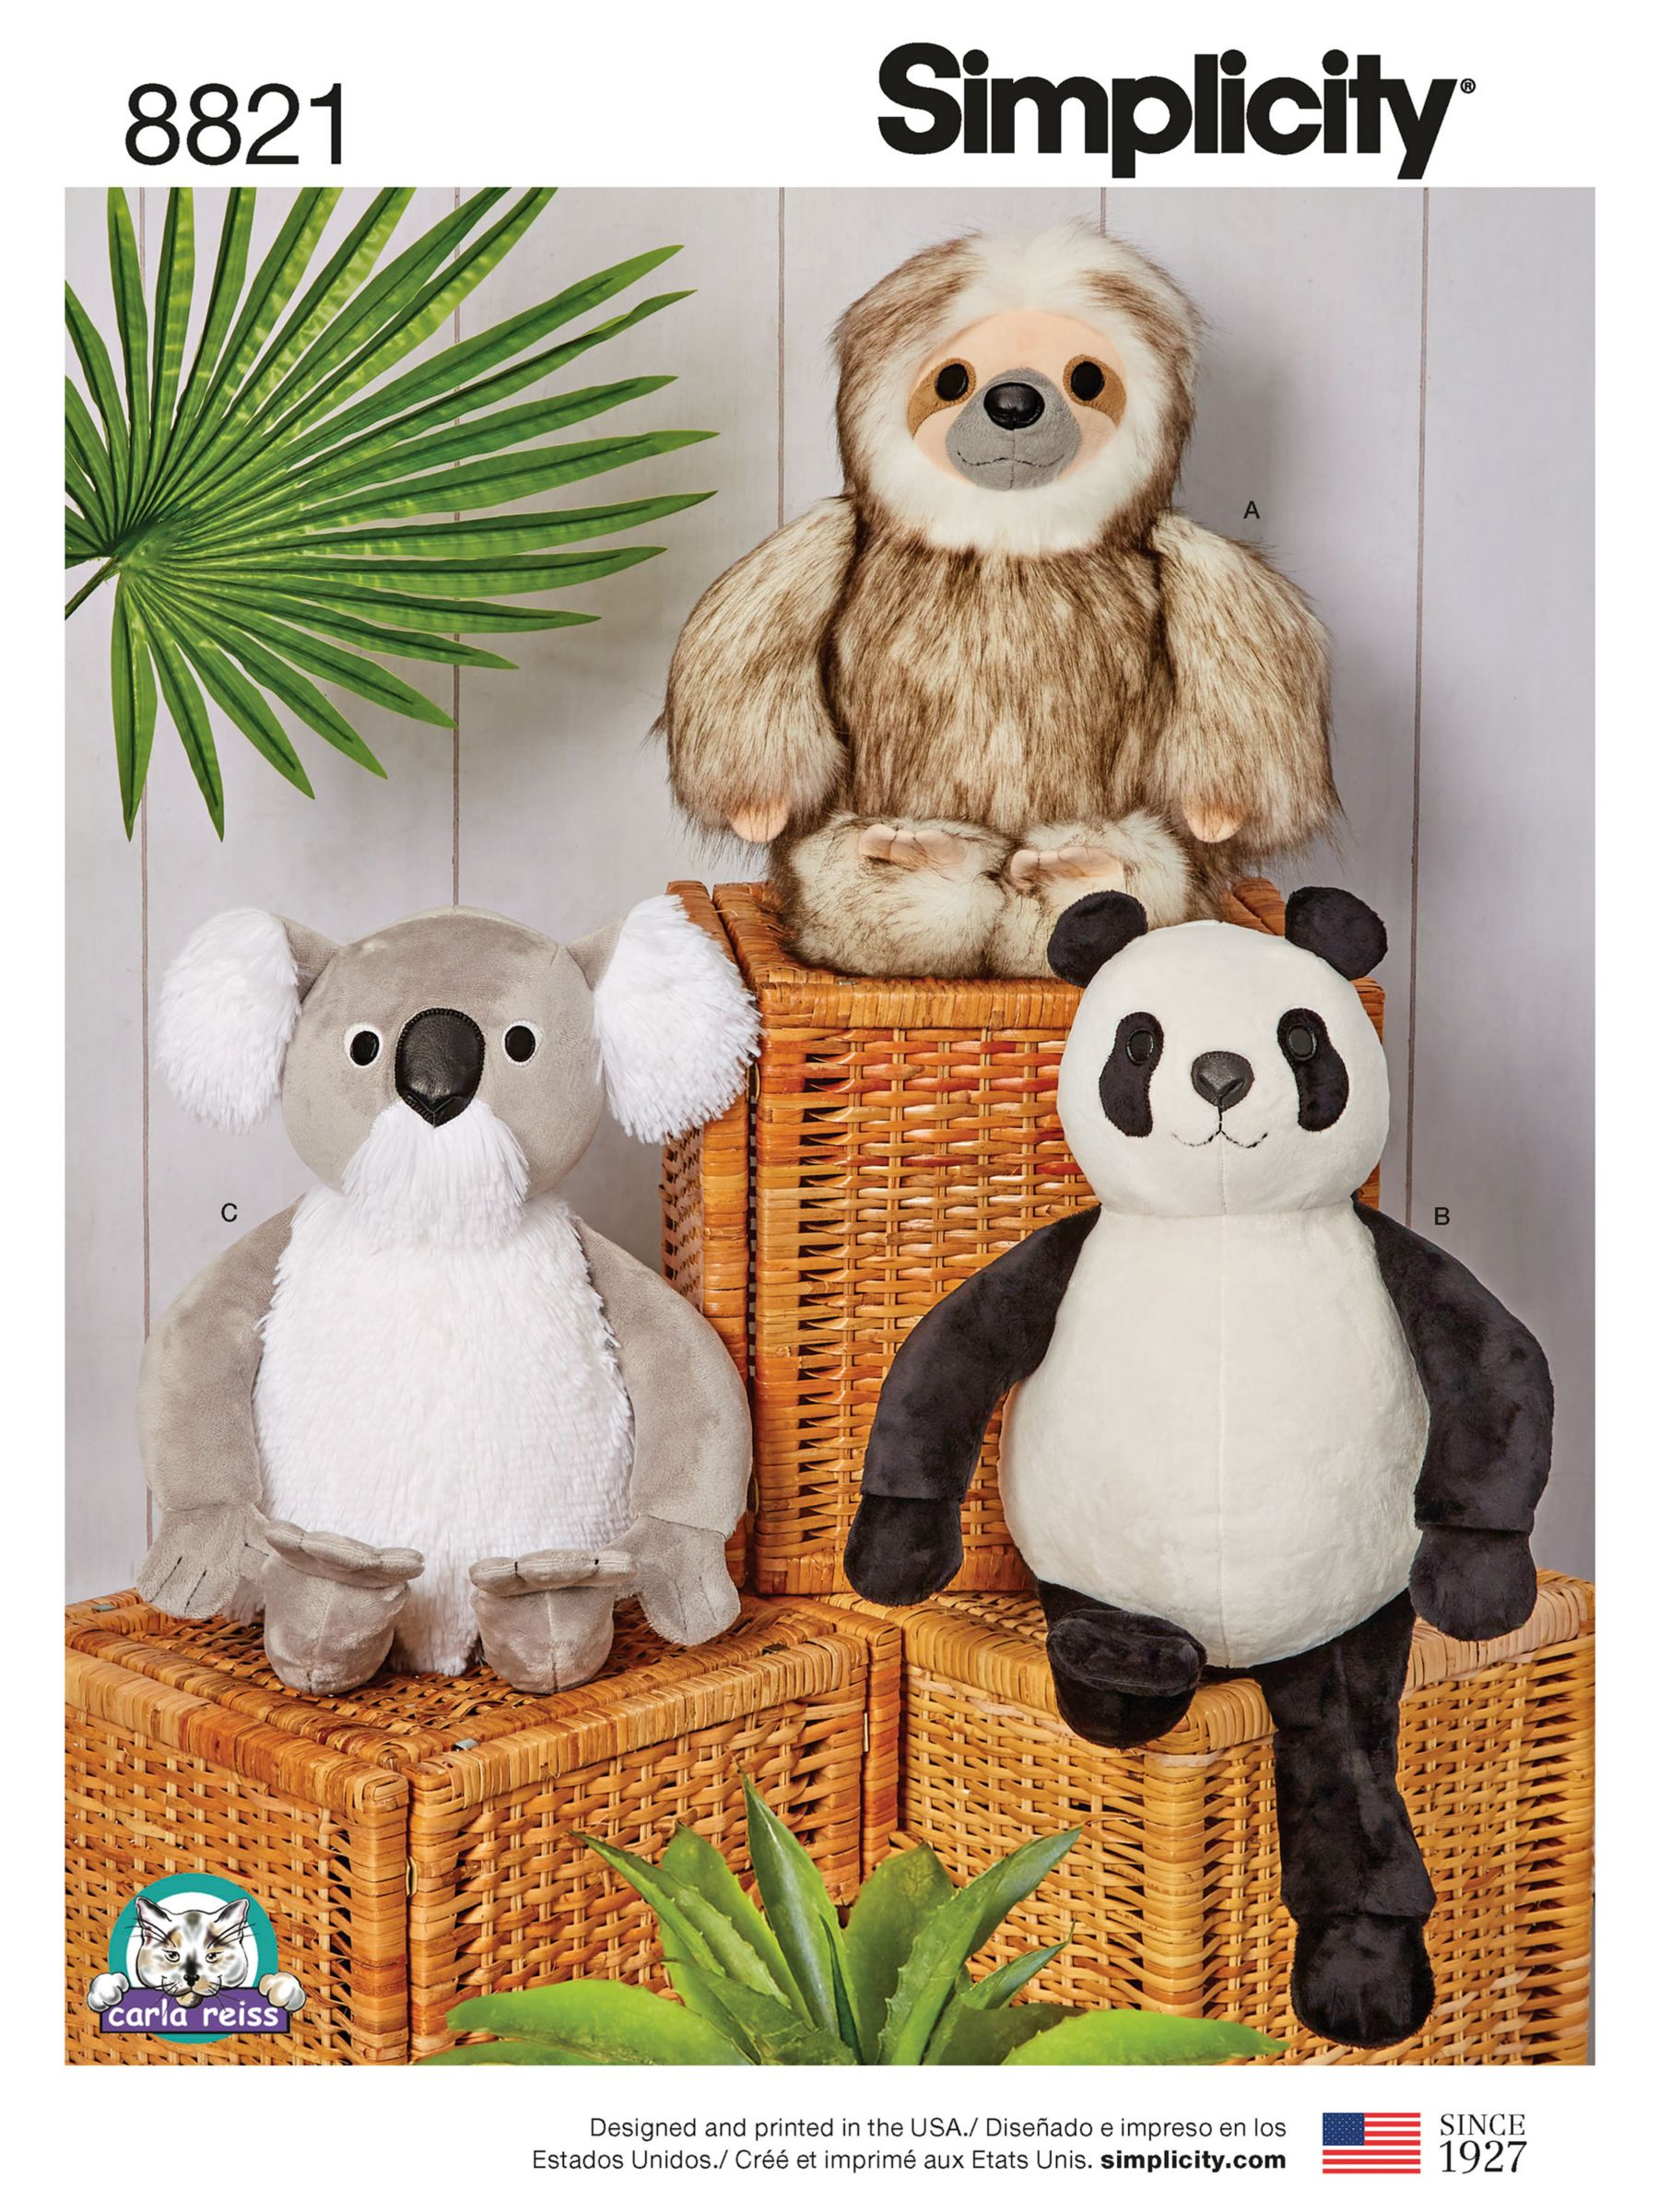 Simplicity Simplicity Stuffed Animals Sewing Pattern, 8821